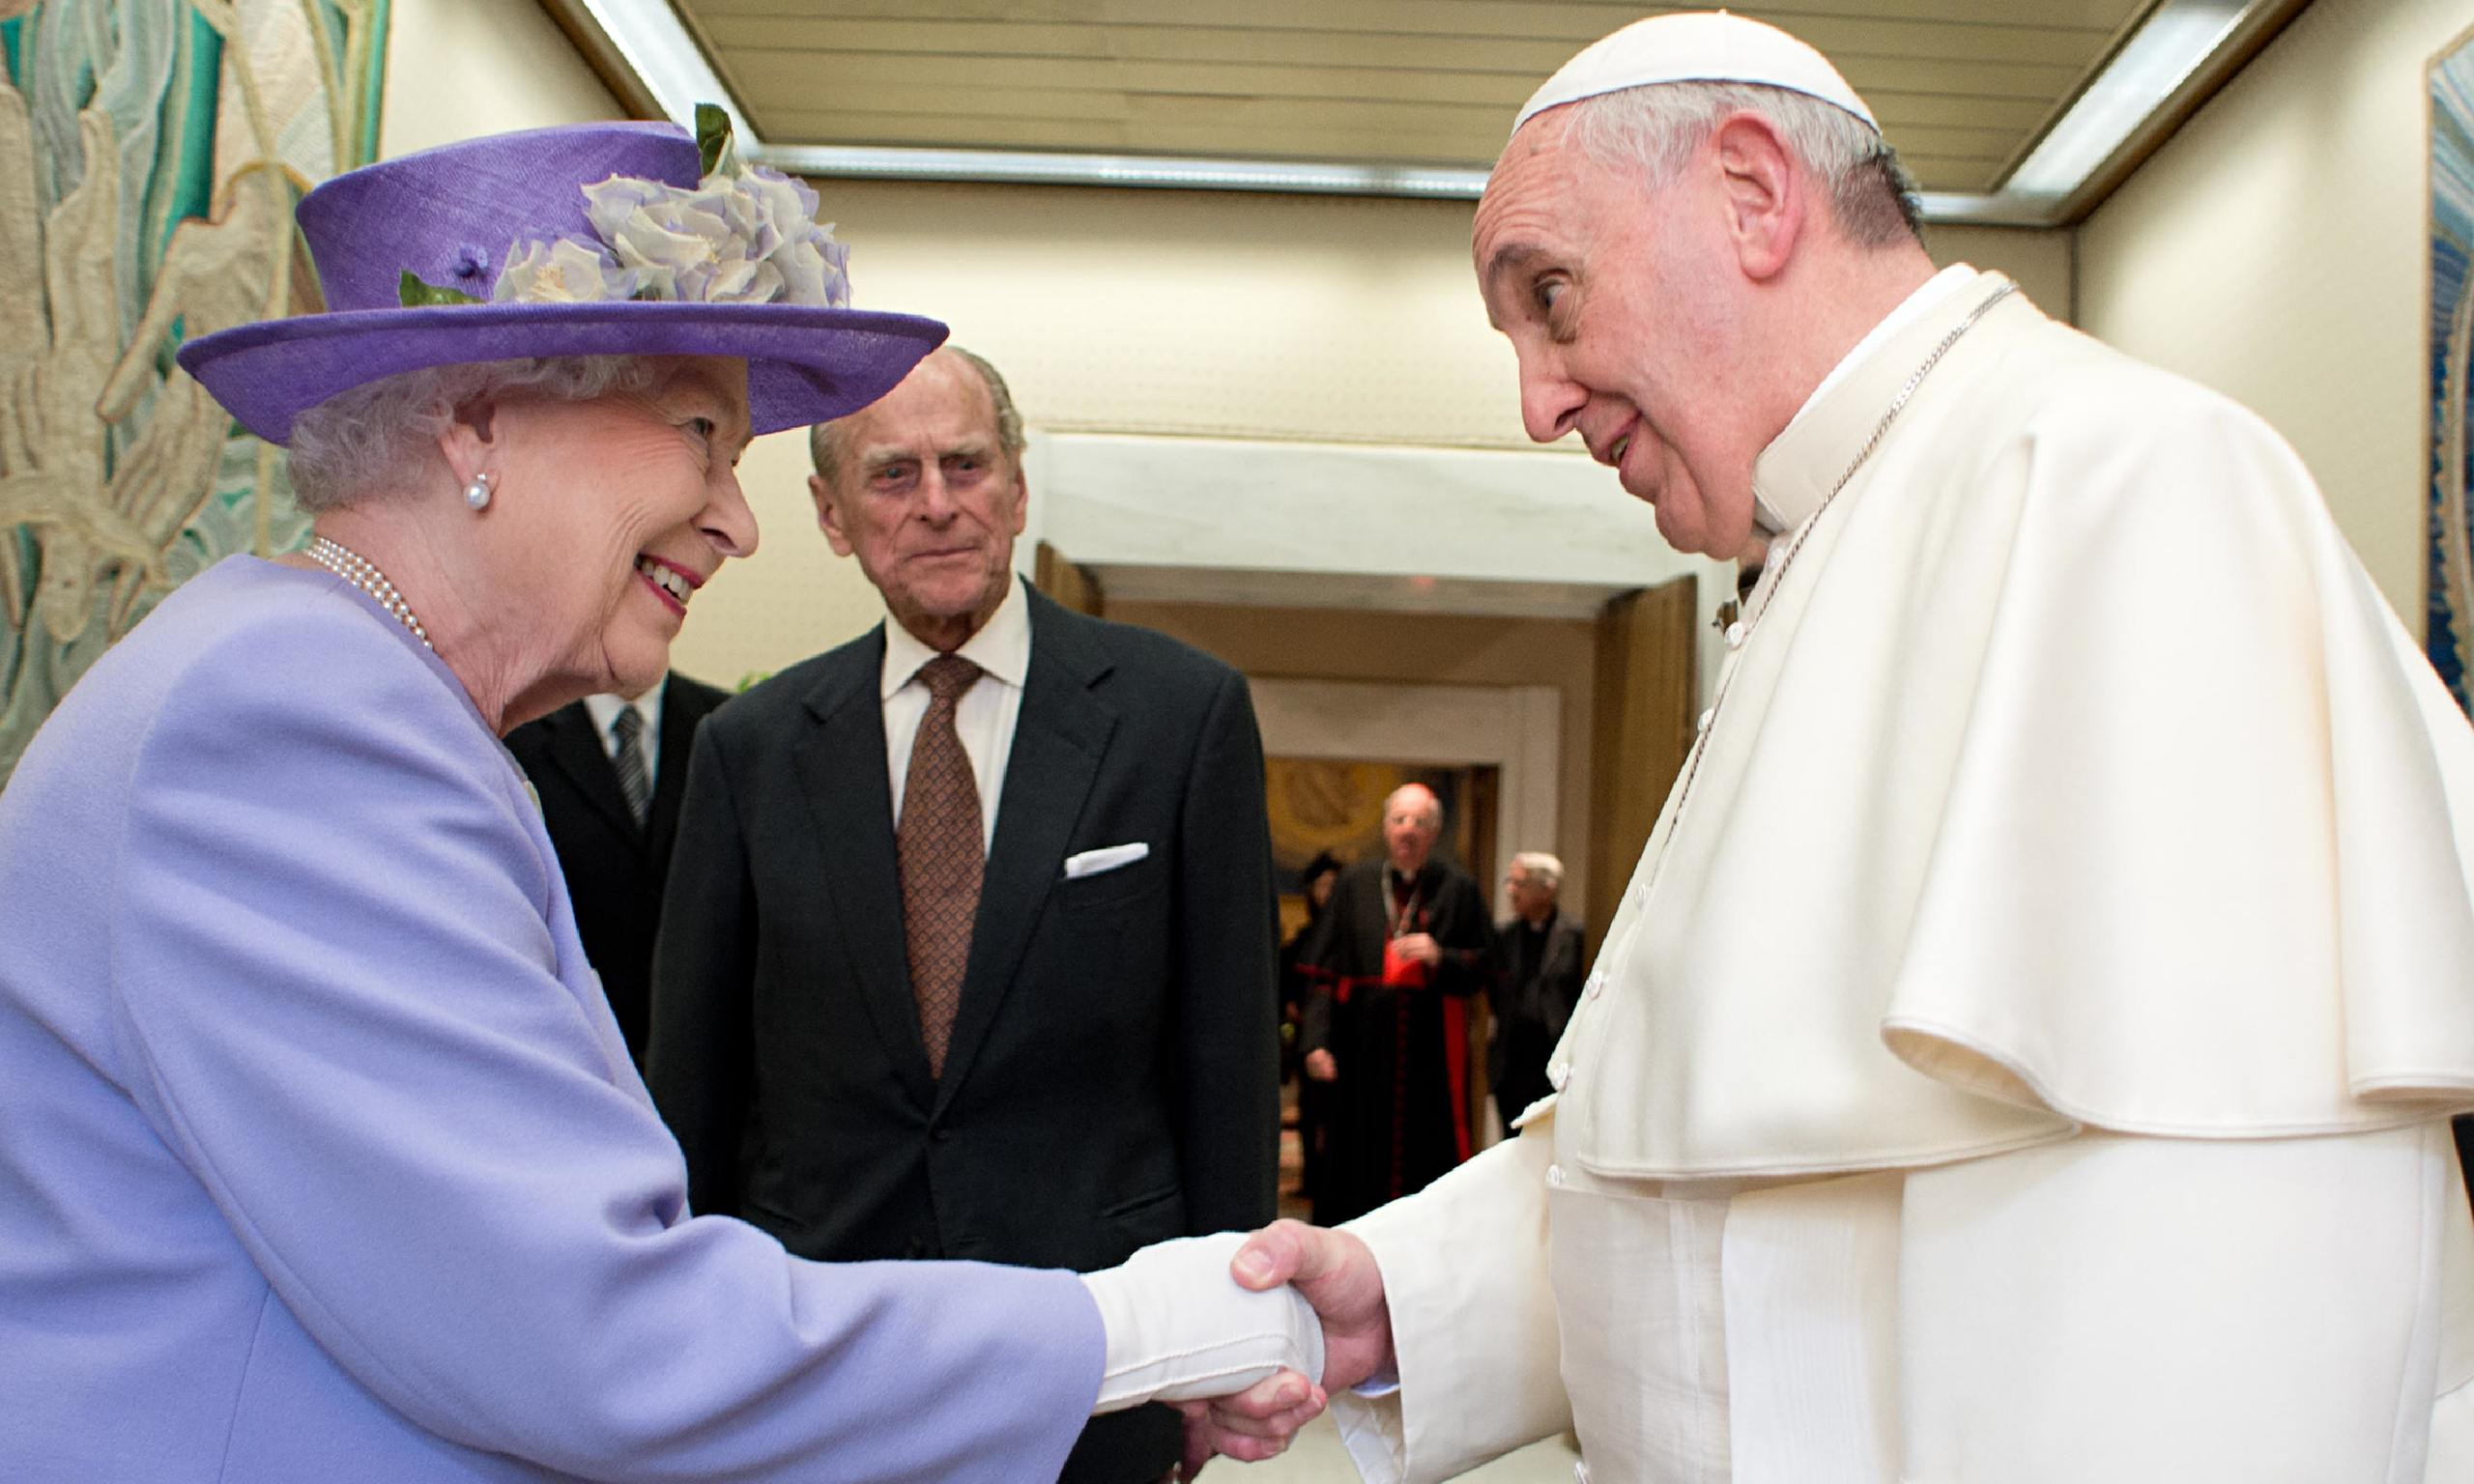 Cordial first meeting between Queen and Pope ...